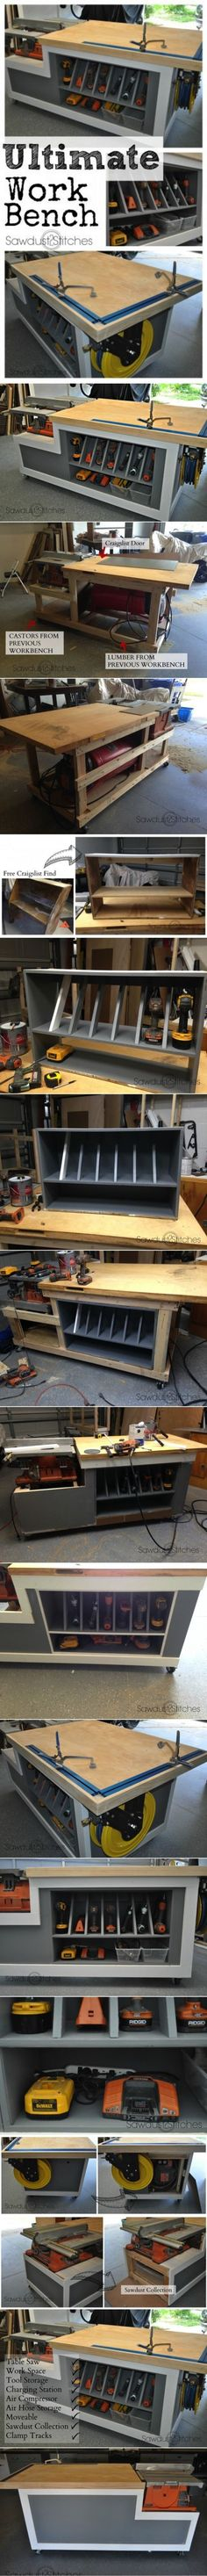 Ultimate Work Bench http://sawdust2stitches.com/workshop-assembly-table/ More